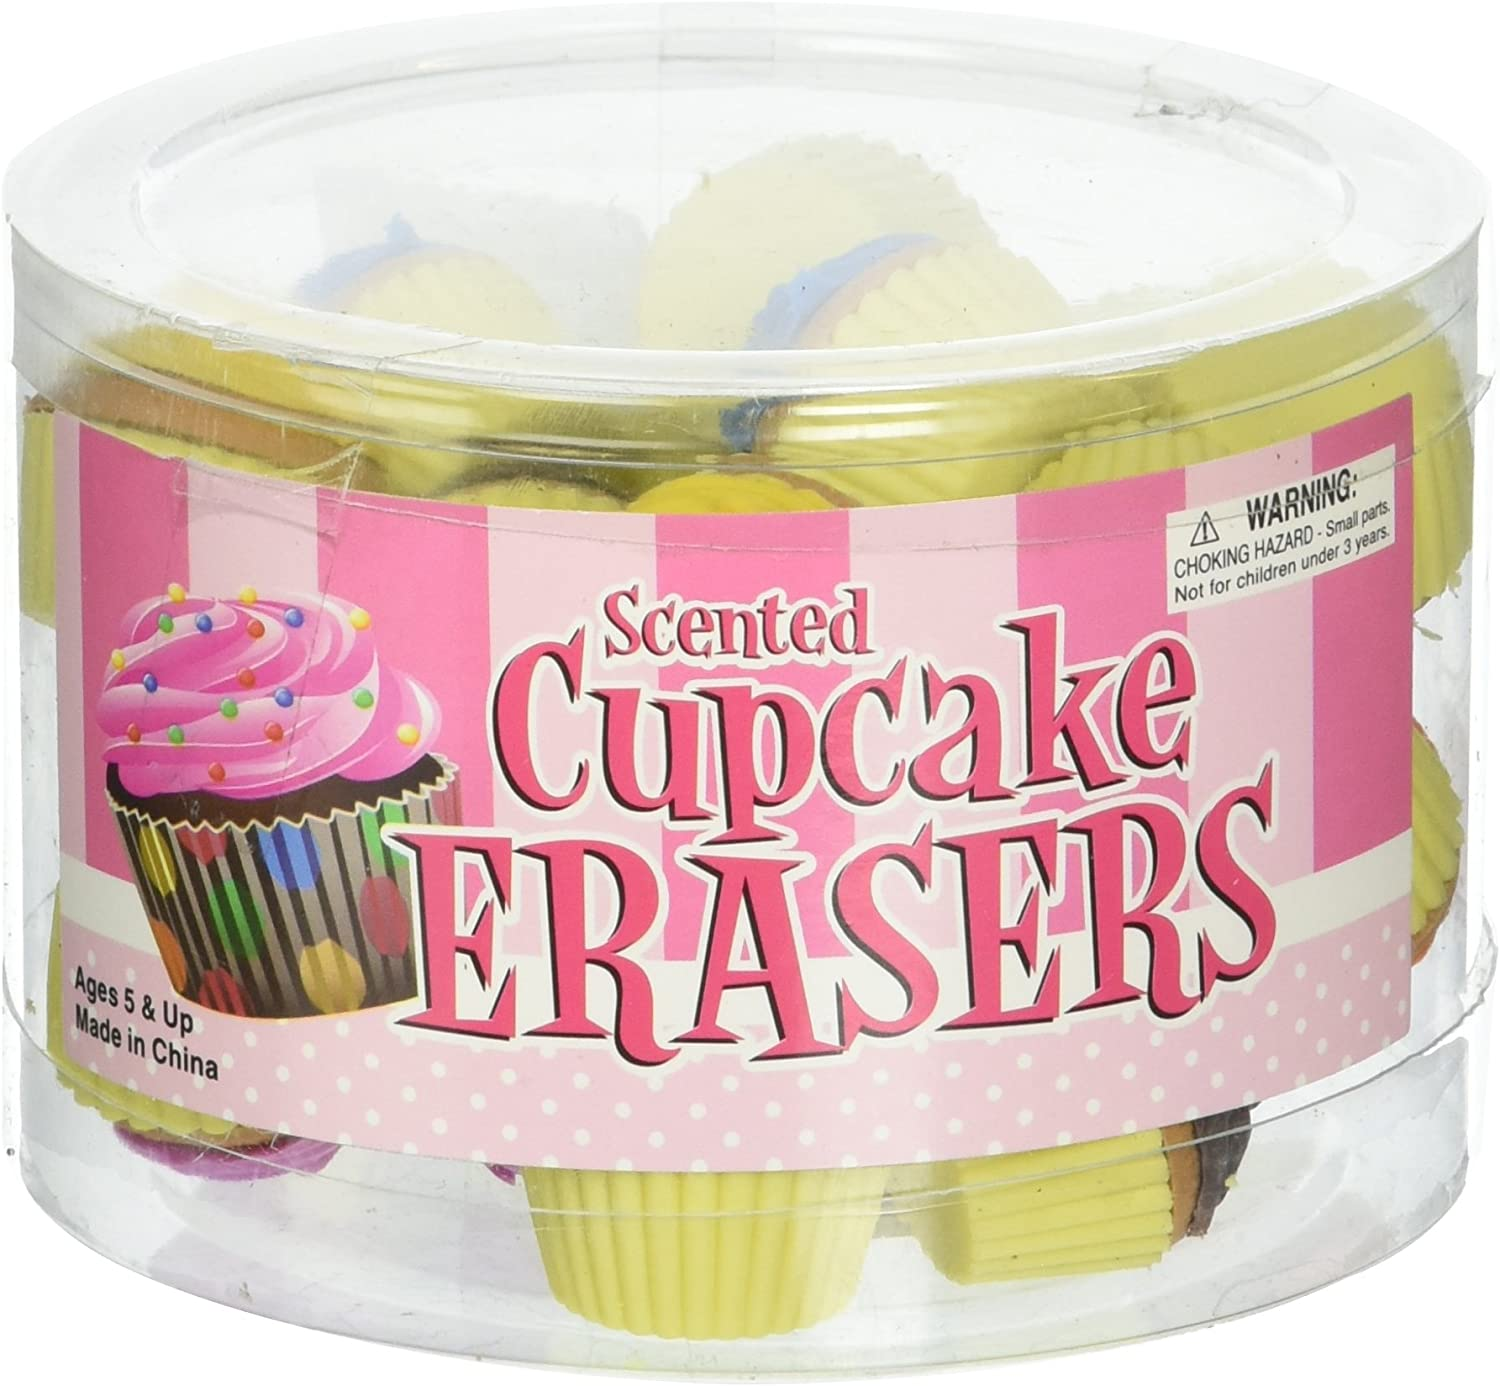 Oasis Supply Scented Cupcake Erasers Toy (24 Piece), 1-Pack (RN STECUPC)